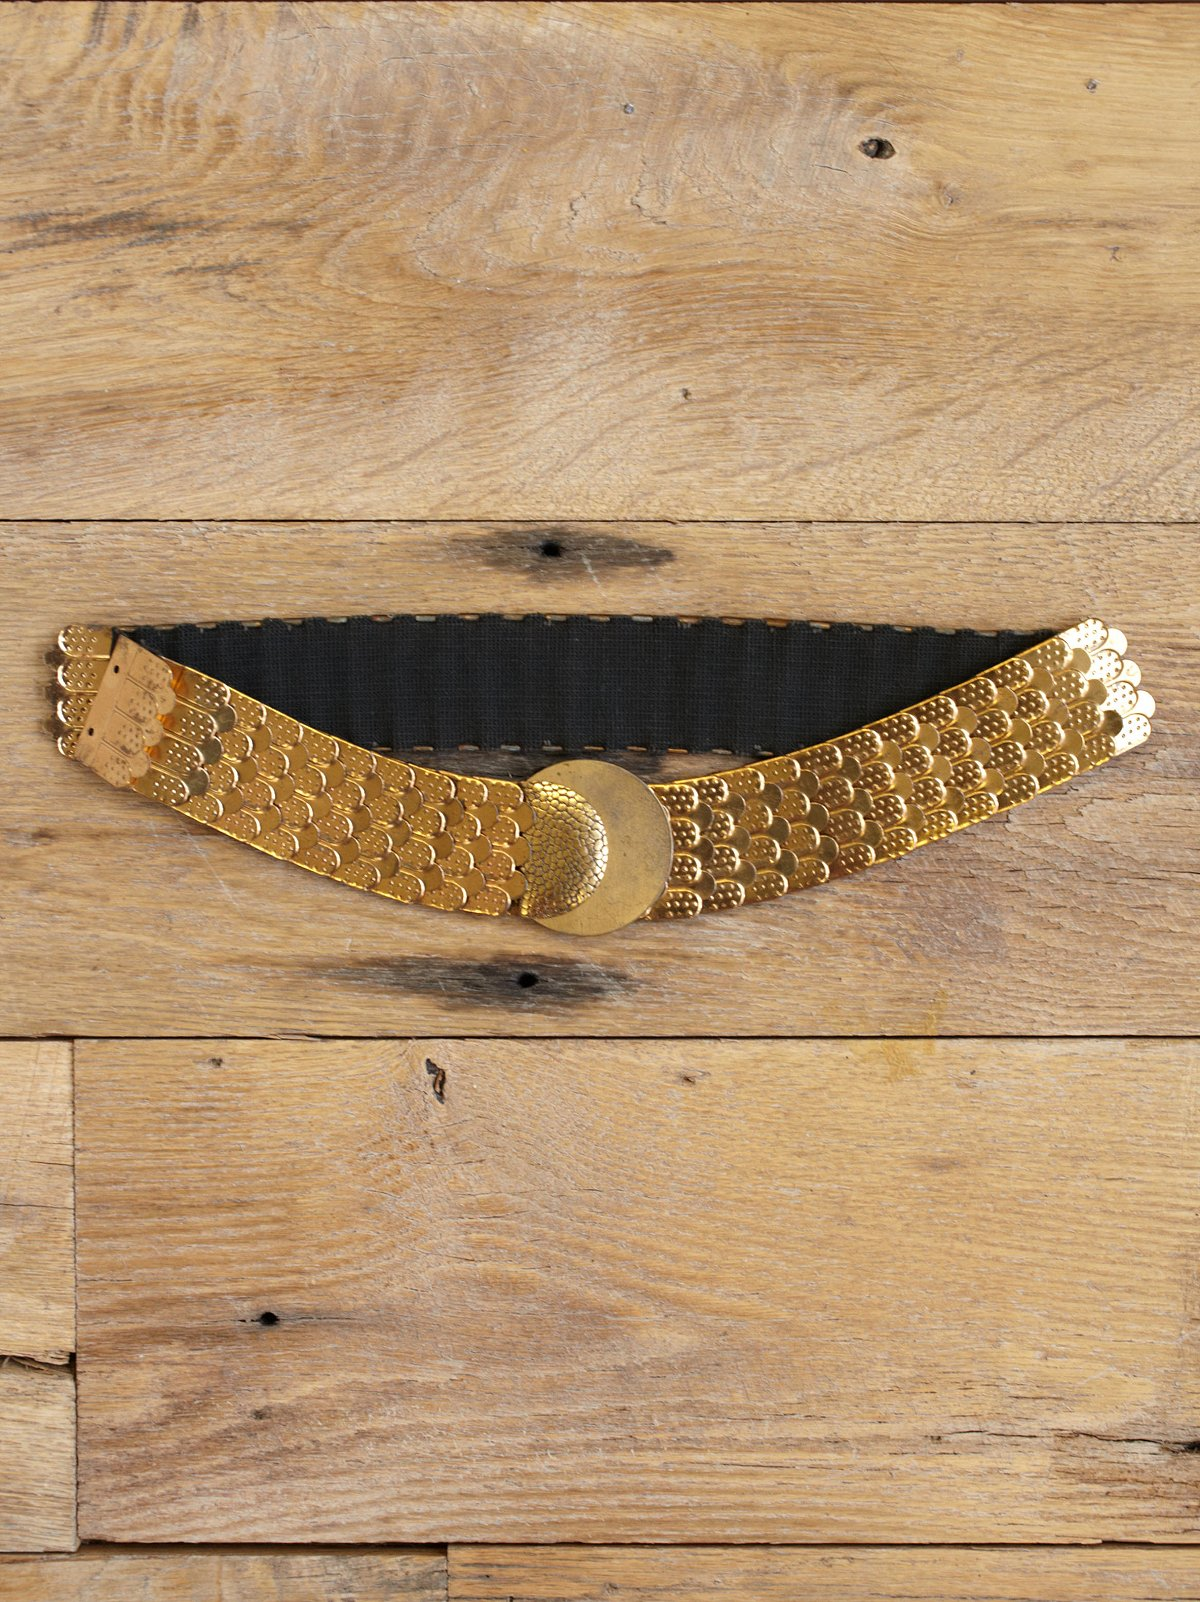 Vintage Fishscale Retro Belt